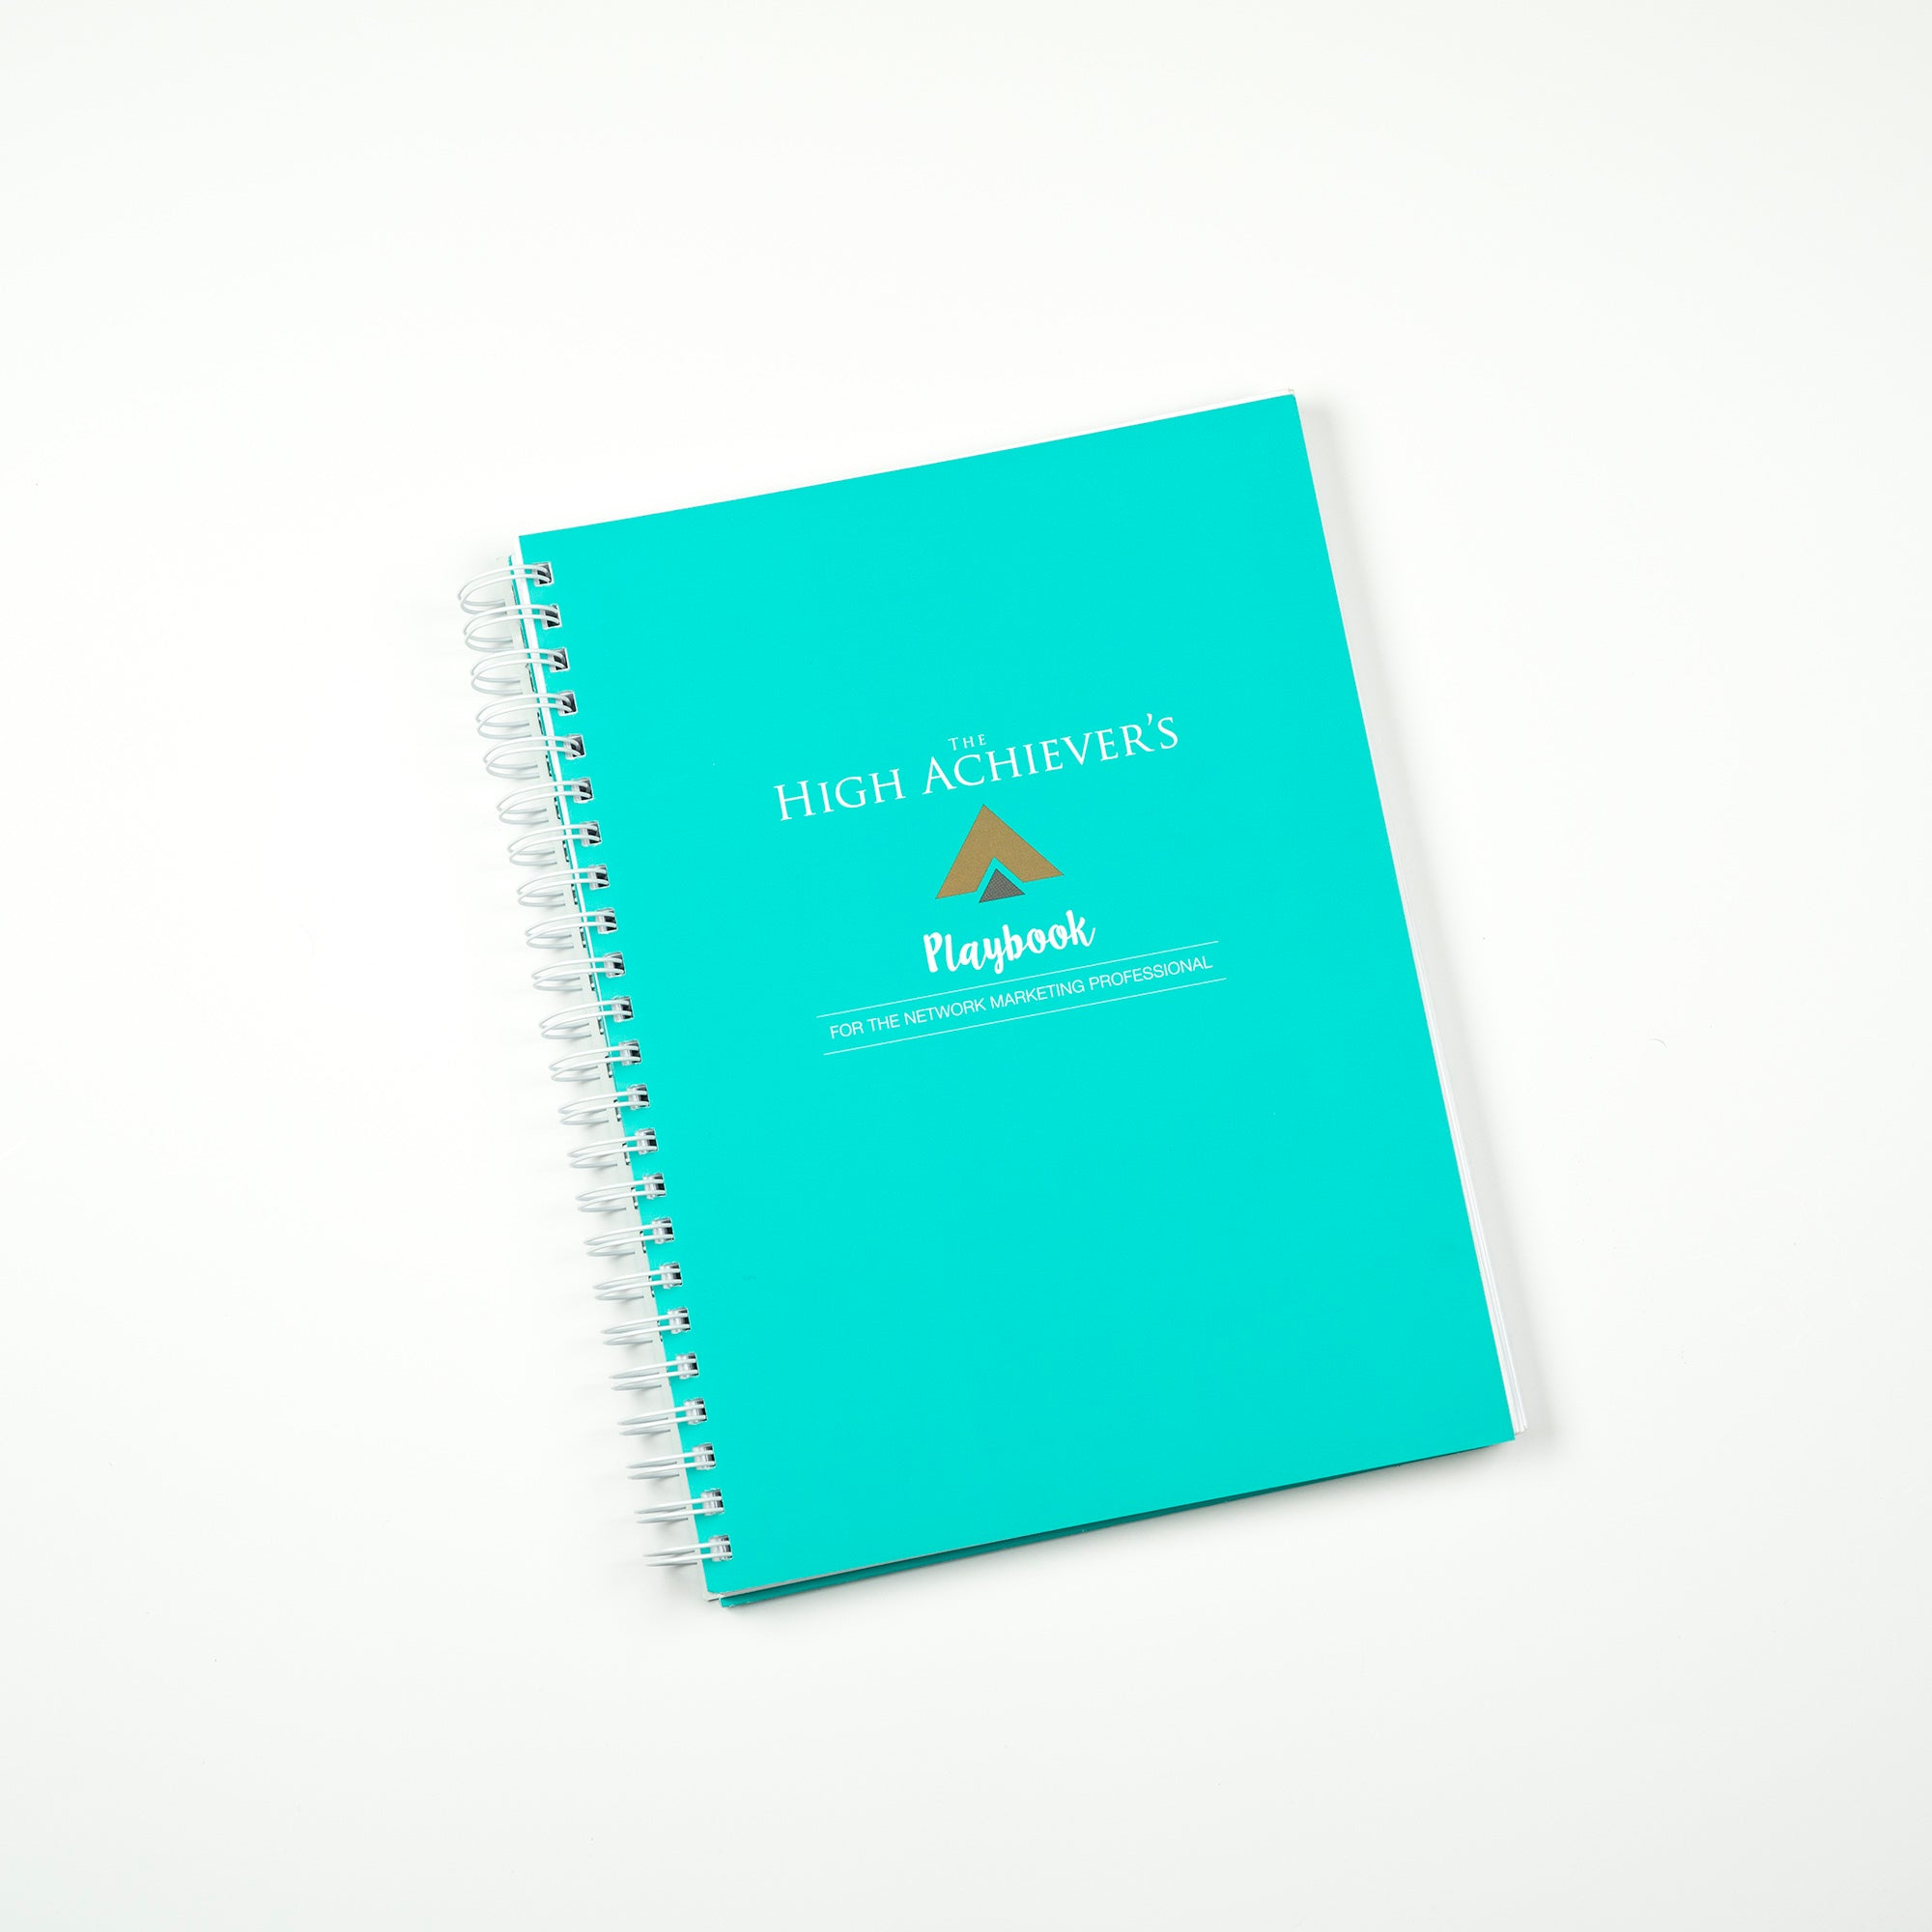 90-Day High Achievers Playbook (Robins Egg Blue)